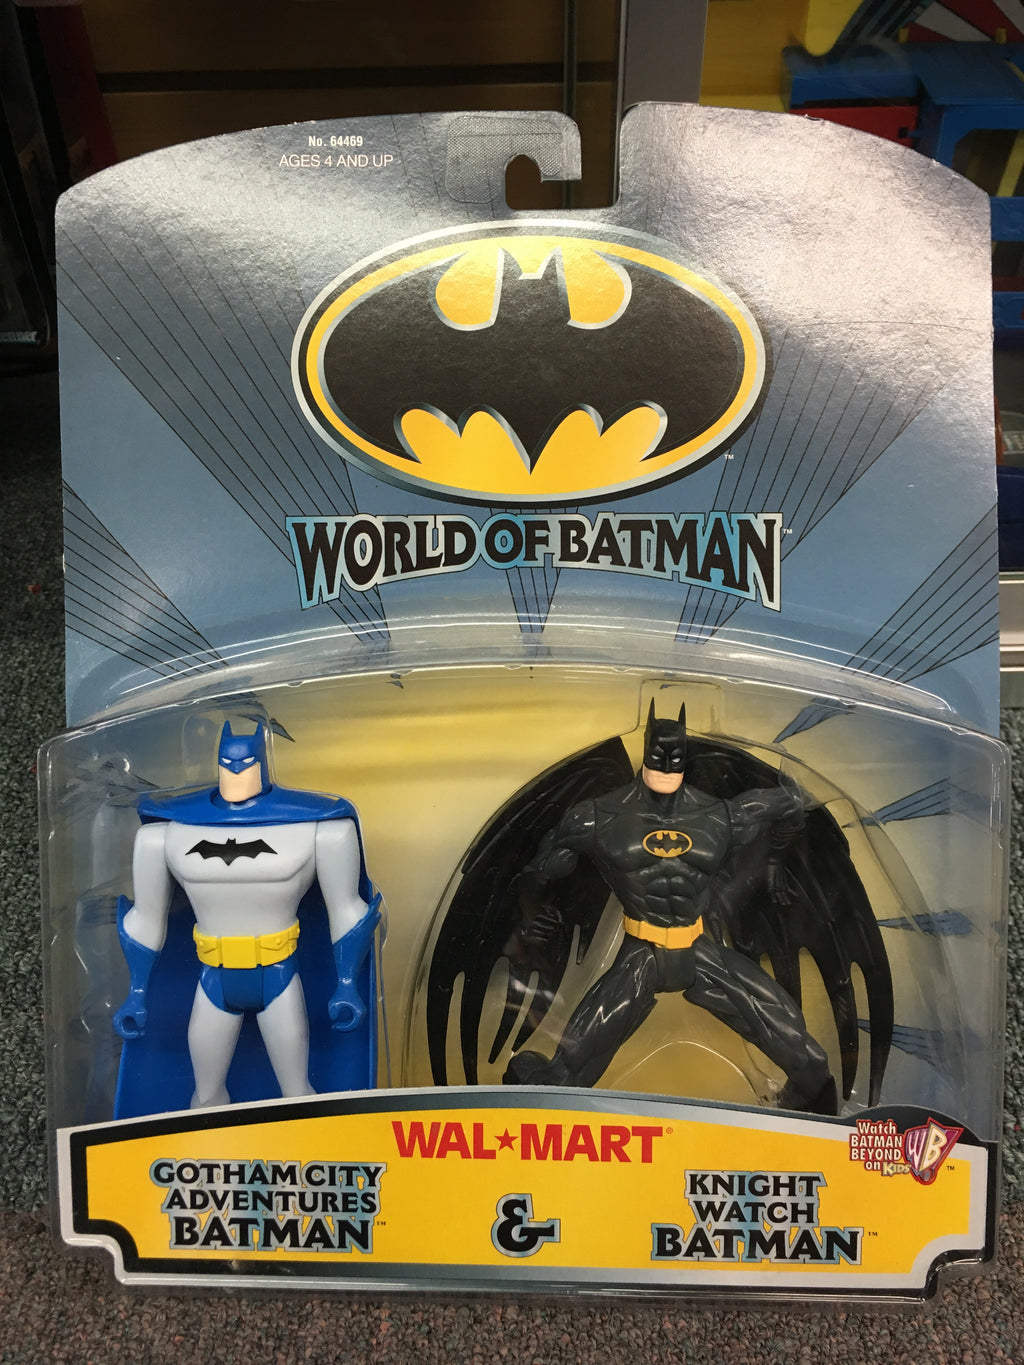 World of Batman- Gotham City Adventures & Knight Watch Batman